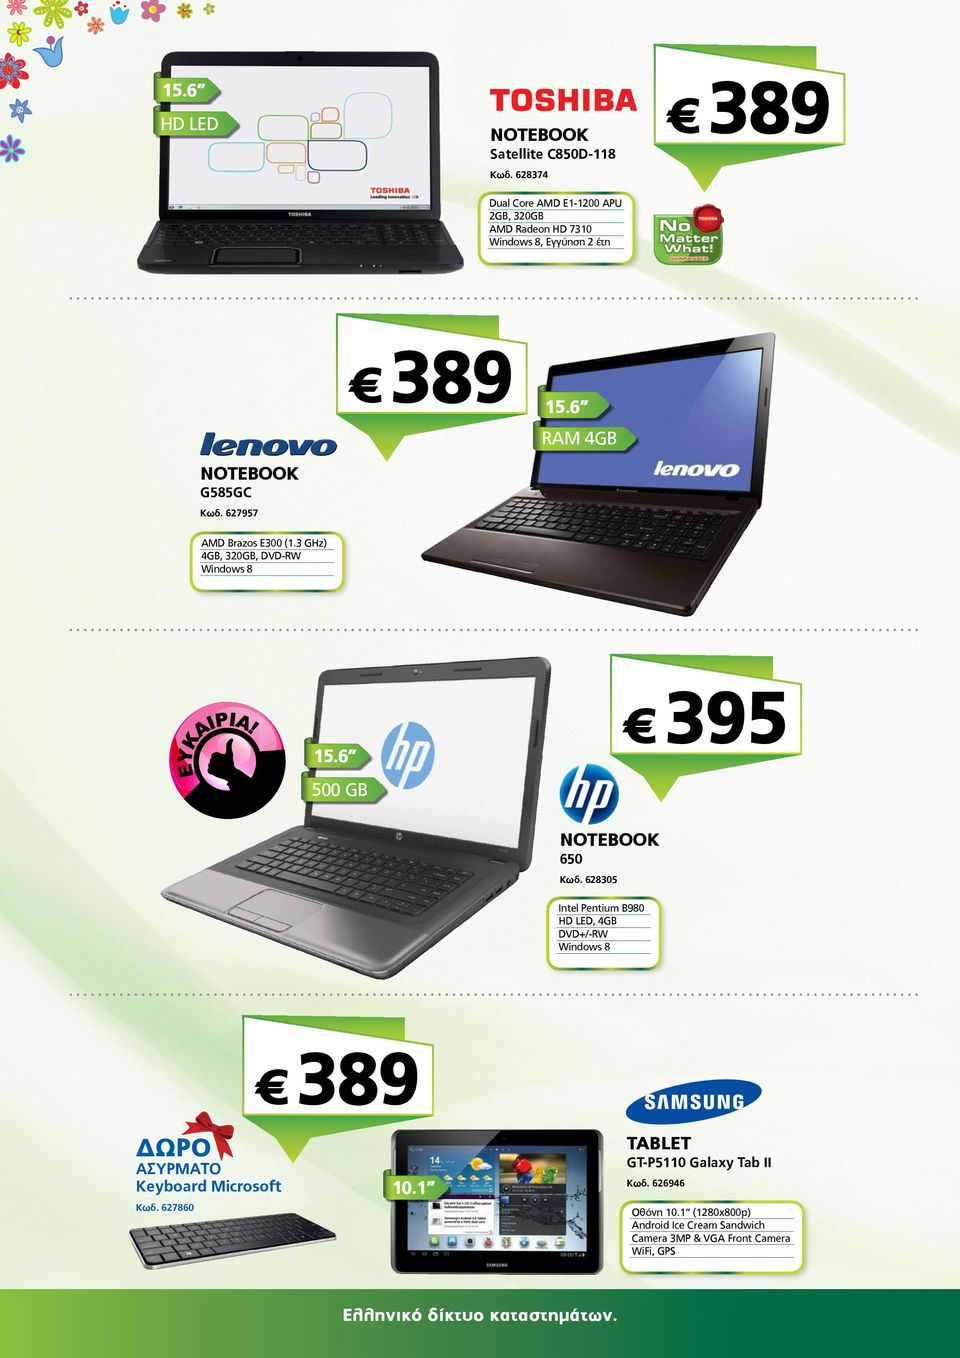 627957 AMD Brazos E300 (1.3 GHz) 4GB, 320GB, DVD-RW Windows 8 395 15.6 500 GΒ NOTEBOOK 650 Κωδ.